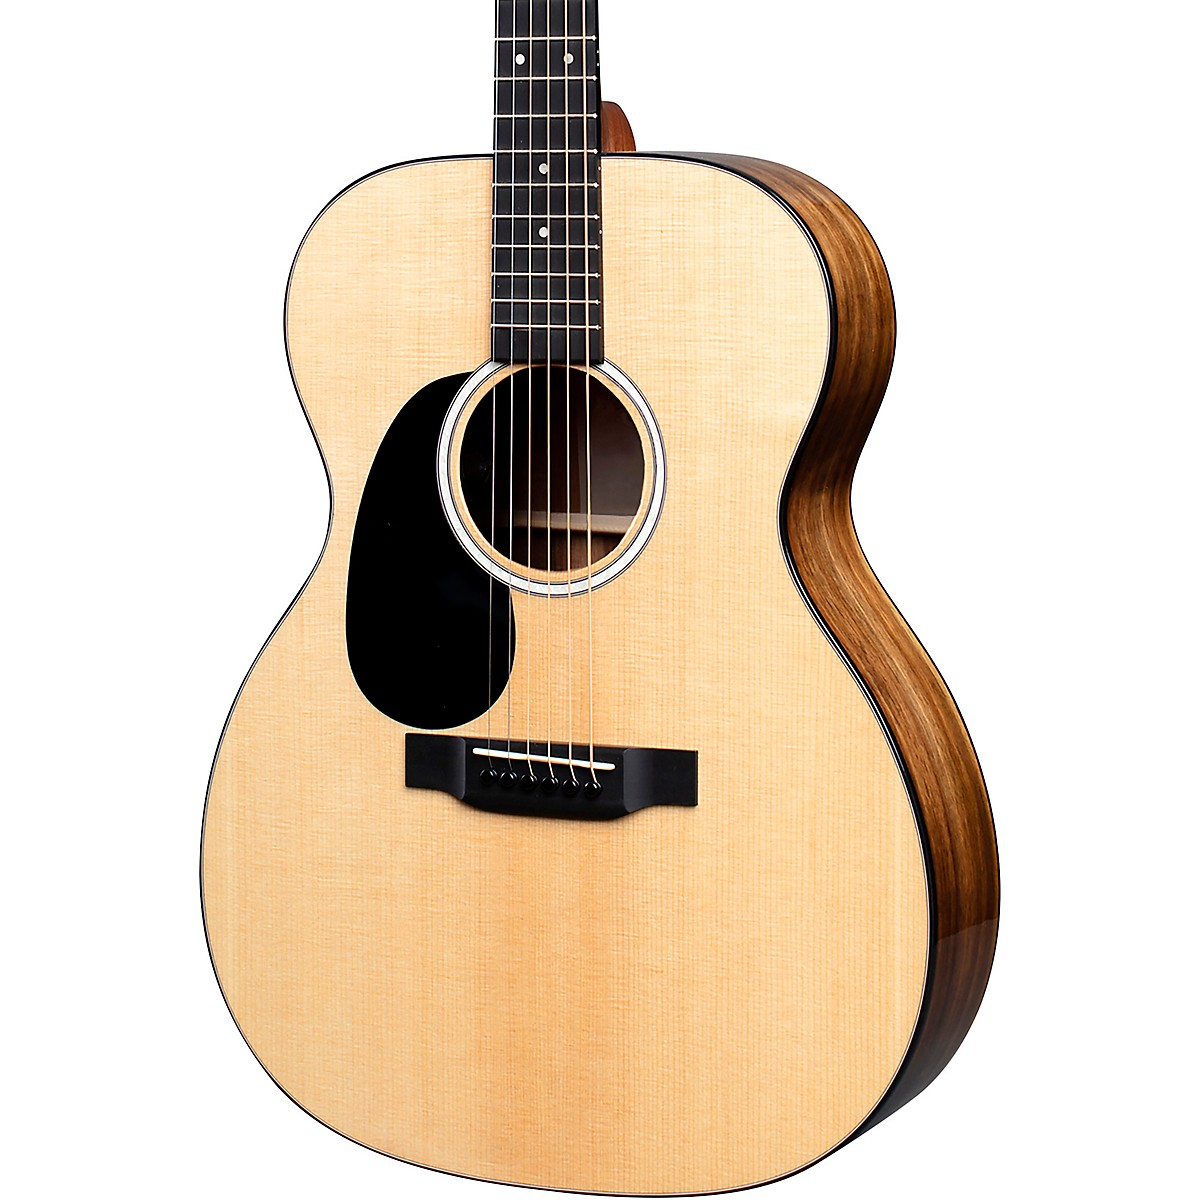 Martin 000-12EL Road Series KOA Fine Veneer Auditorium Left HandedAcoustic-Electric Guitar